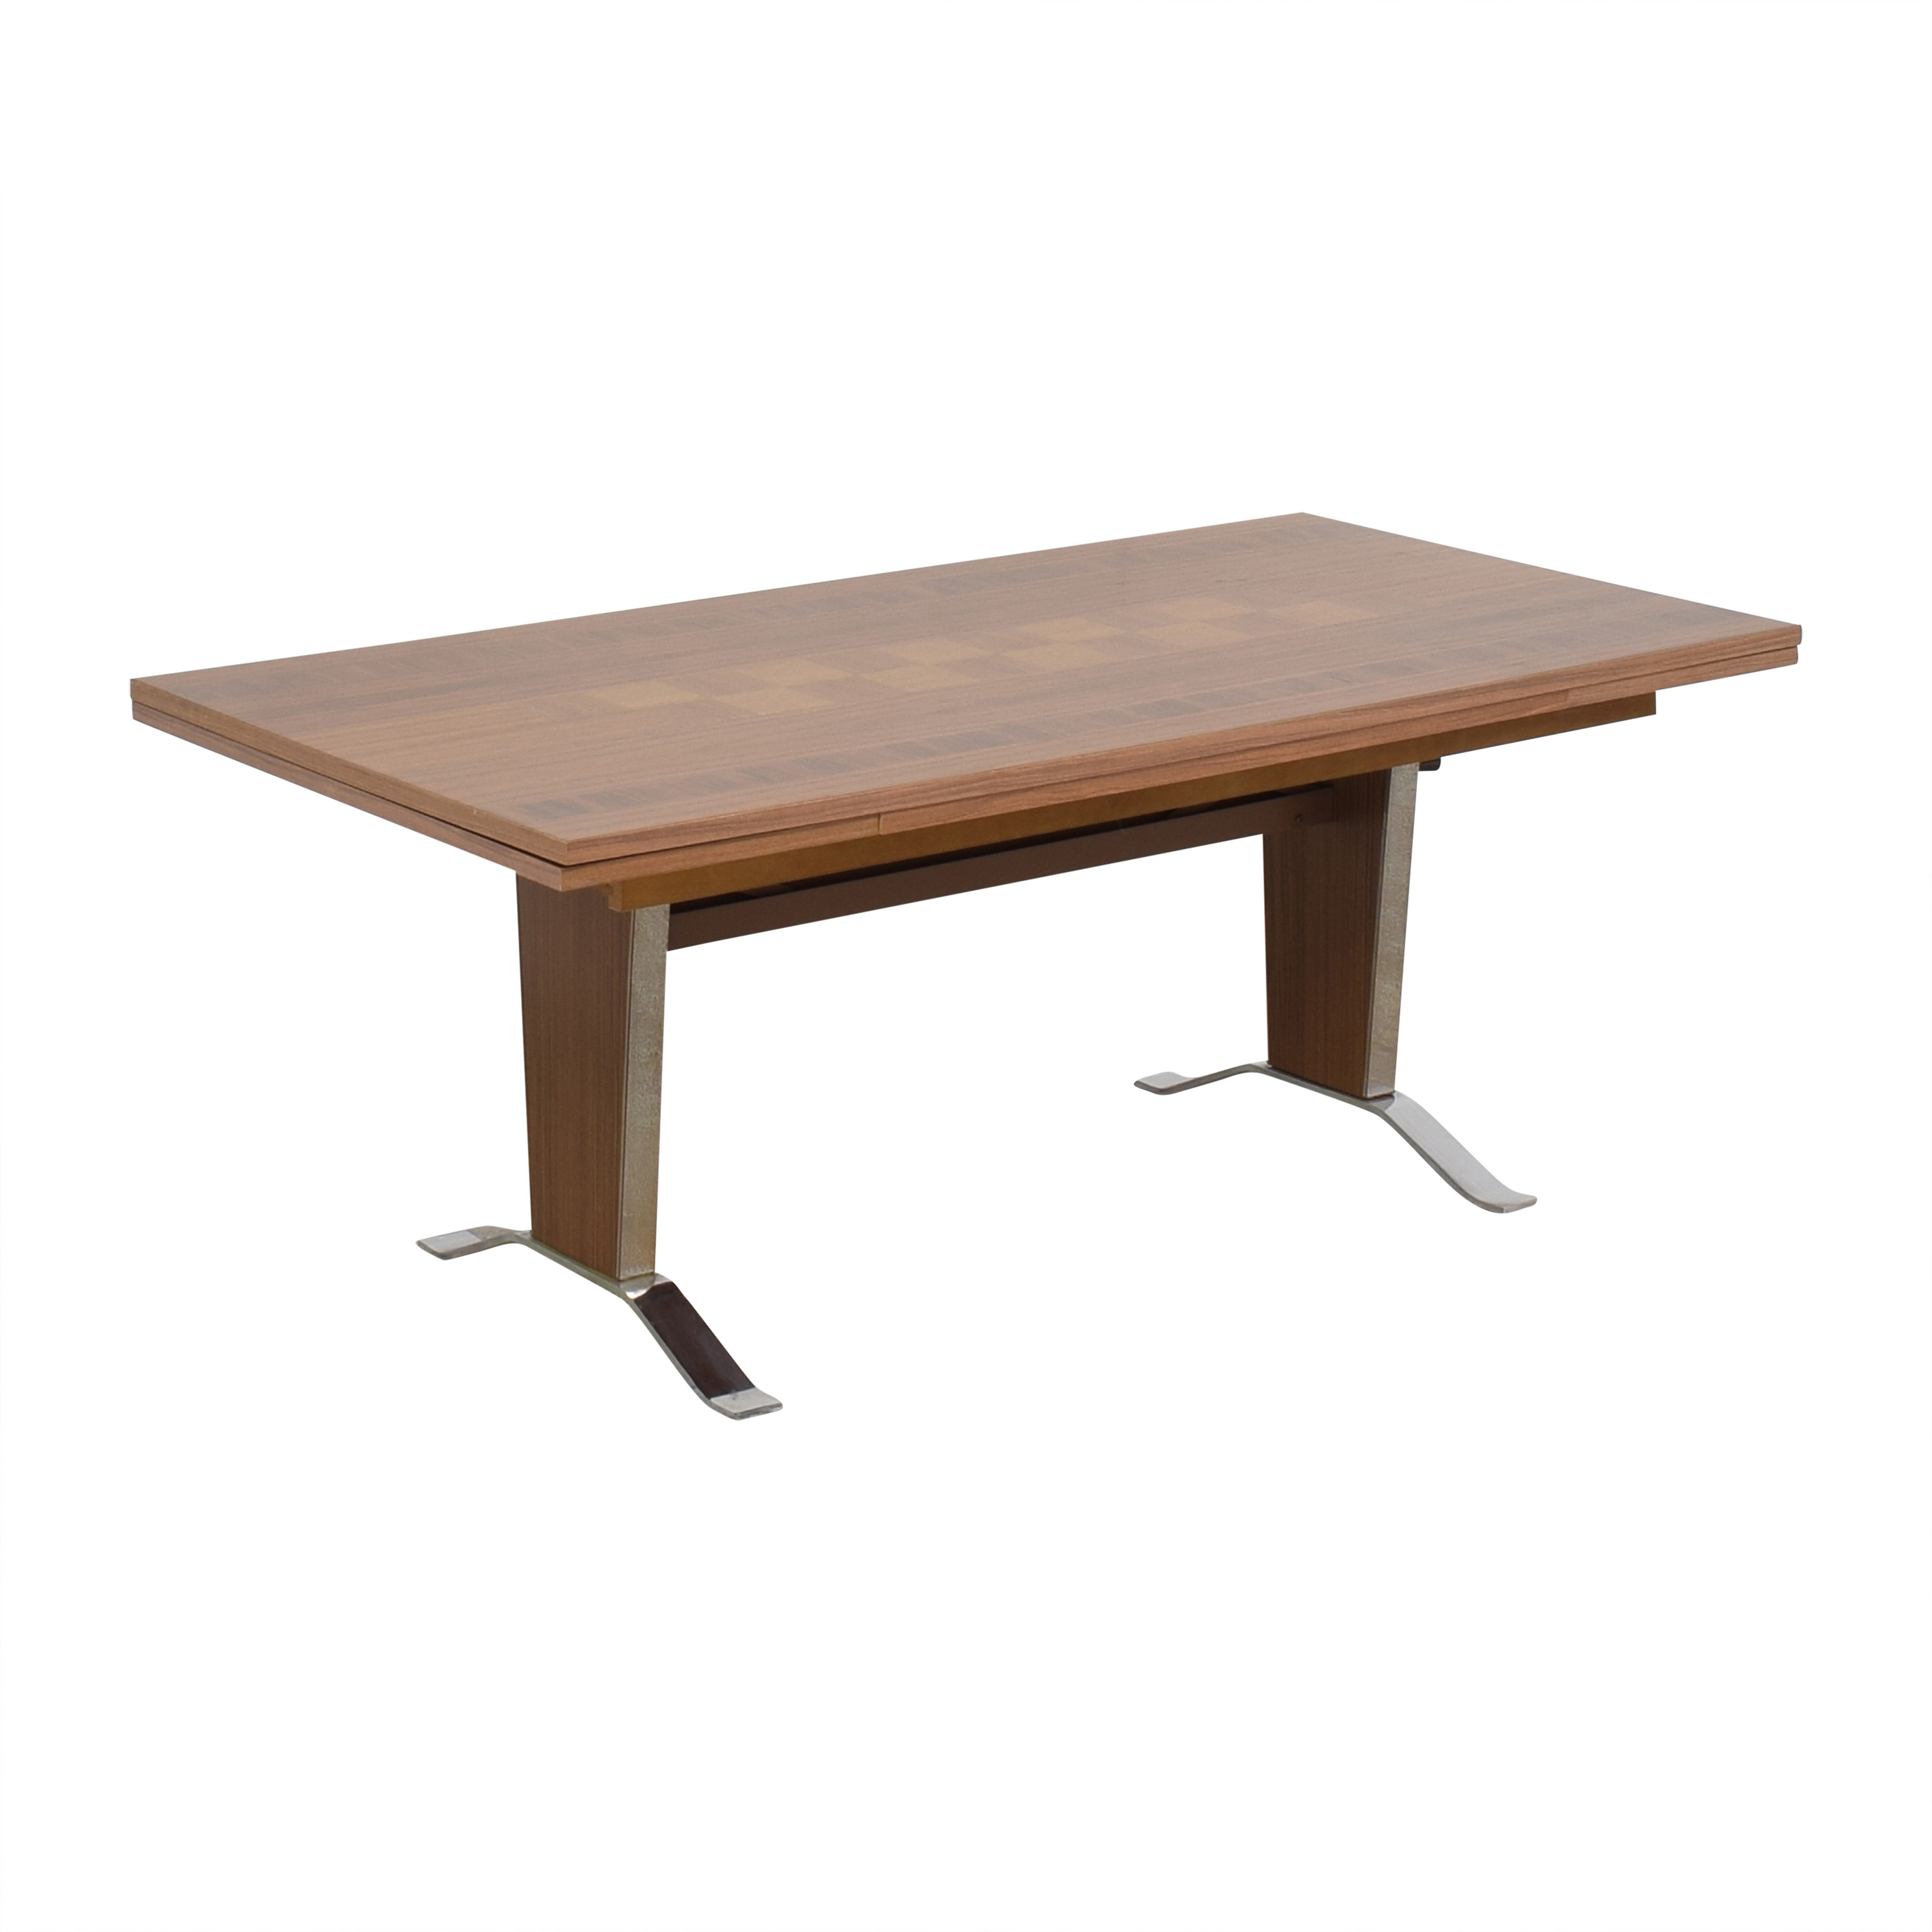 Adjustable Home Office Desk or Table / Tables